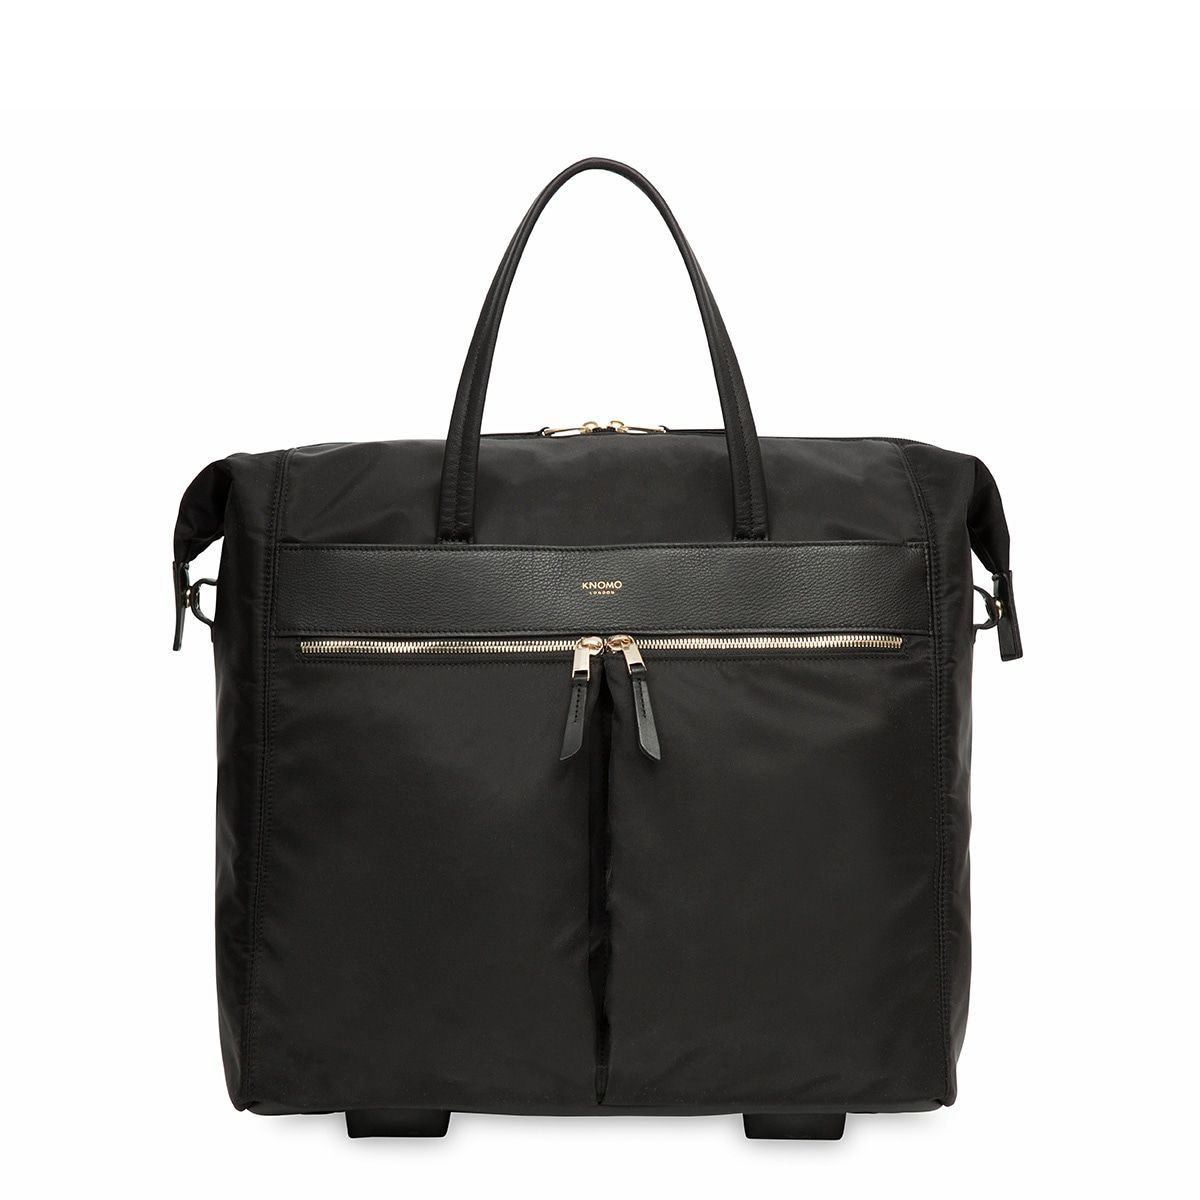 Laptop trolley Knomo Sedley Trolley Tote Black 15 inch